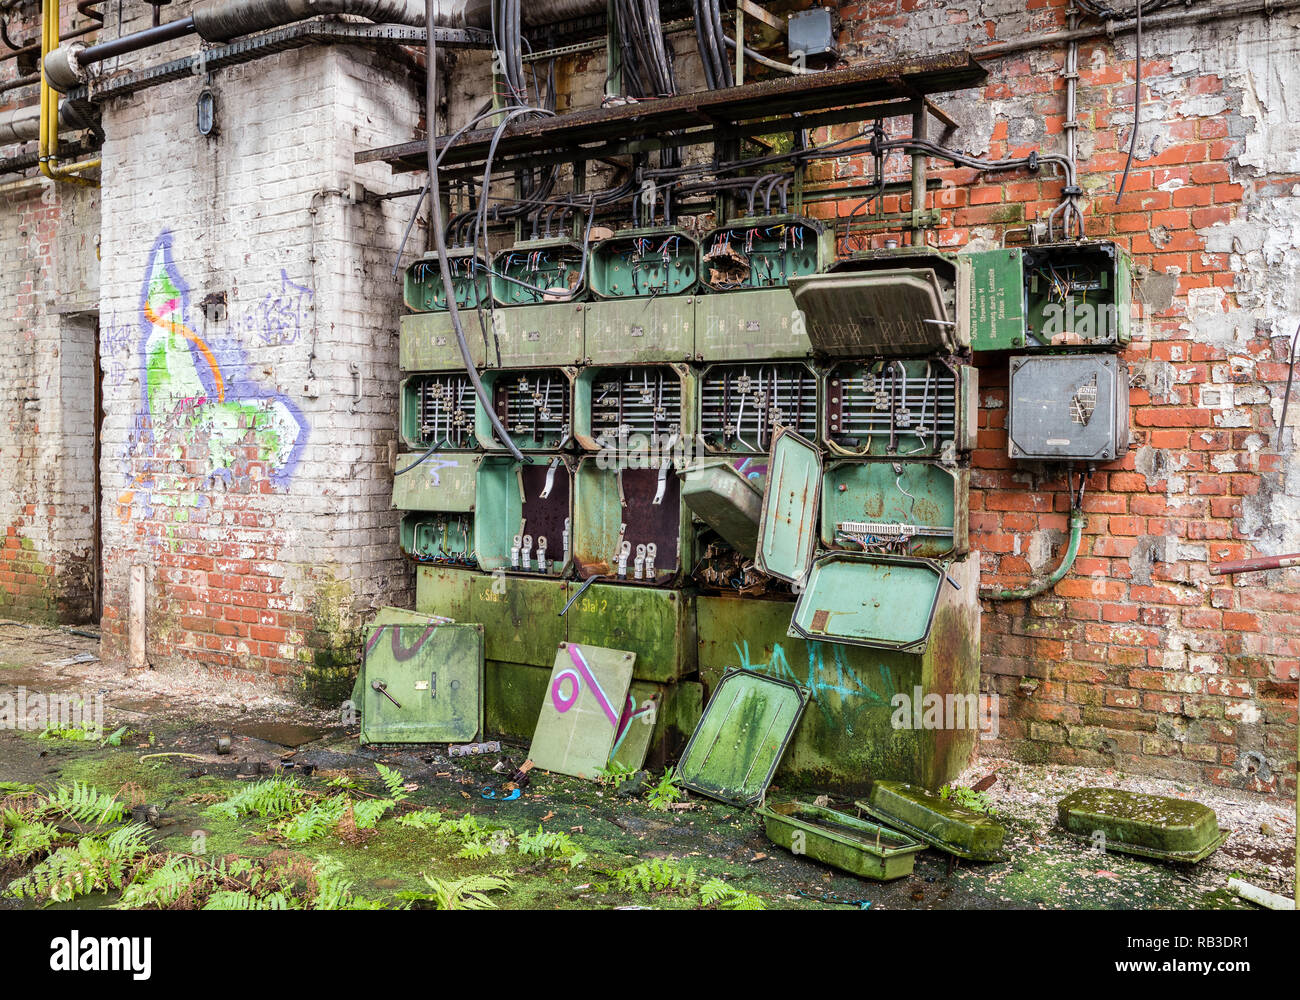 Old Fuses Fuse Box Stock Photos Images Green Factory Image